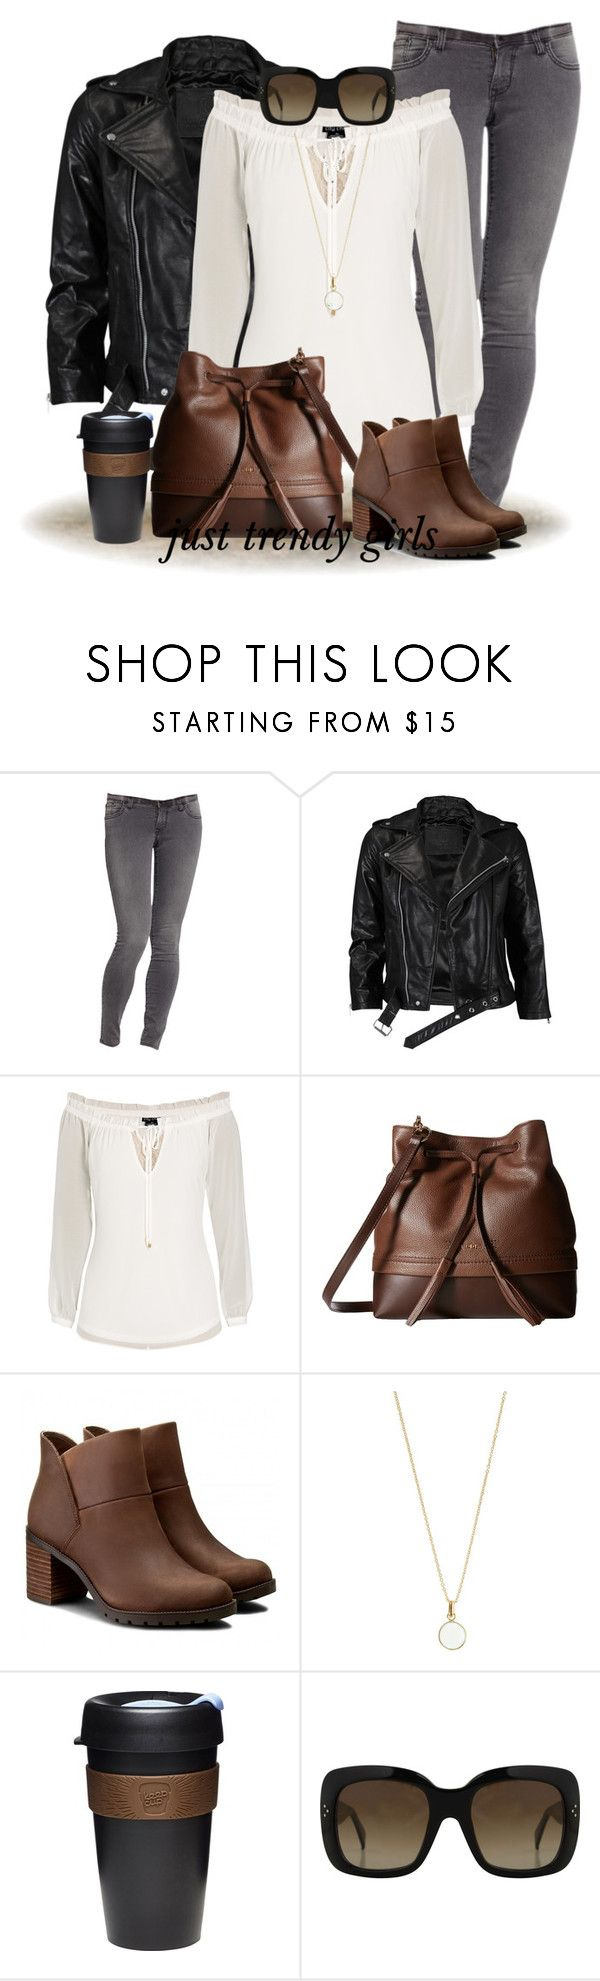 """""""fall fashion"""" by justtrendygirls ❤ liked on Polyvore featuring Old Navy, VIPARO, City Chic, Lodis, Clarks, Accessorize, KeepCup and CÉLINE"""